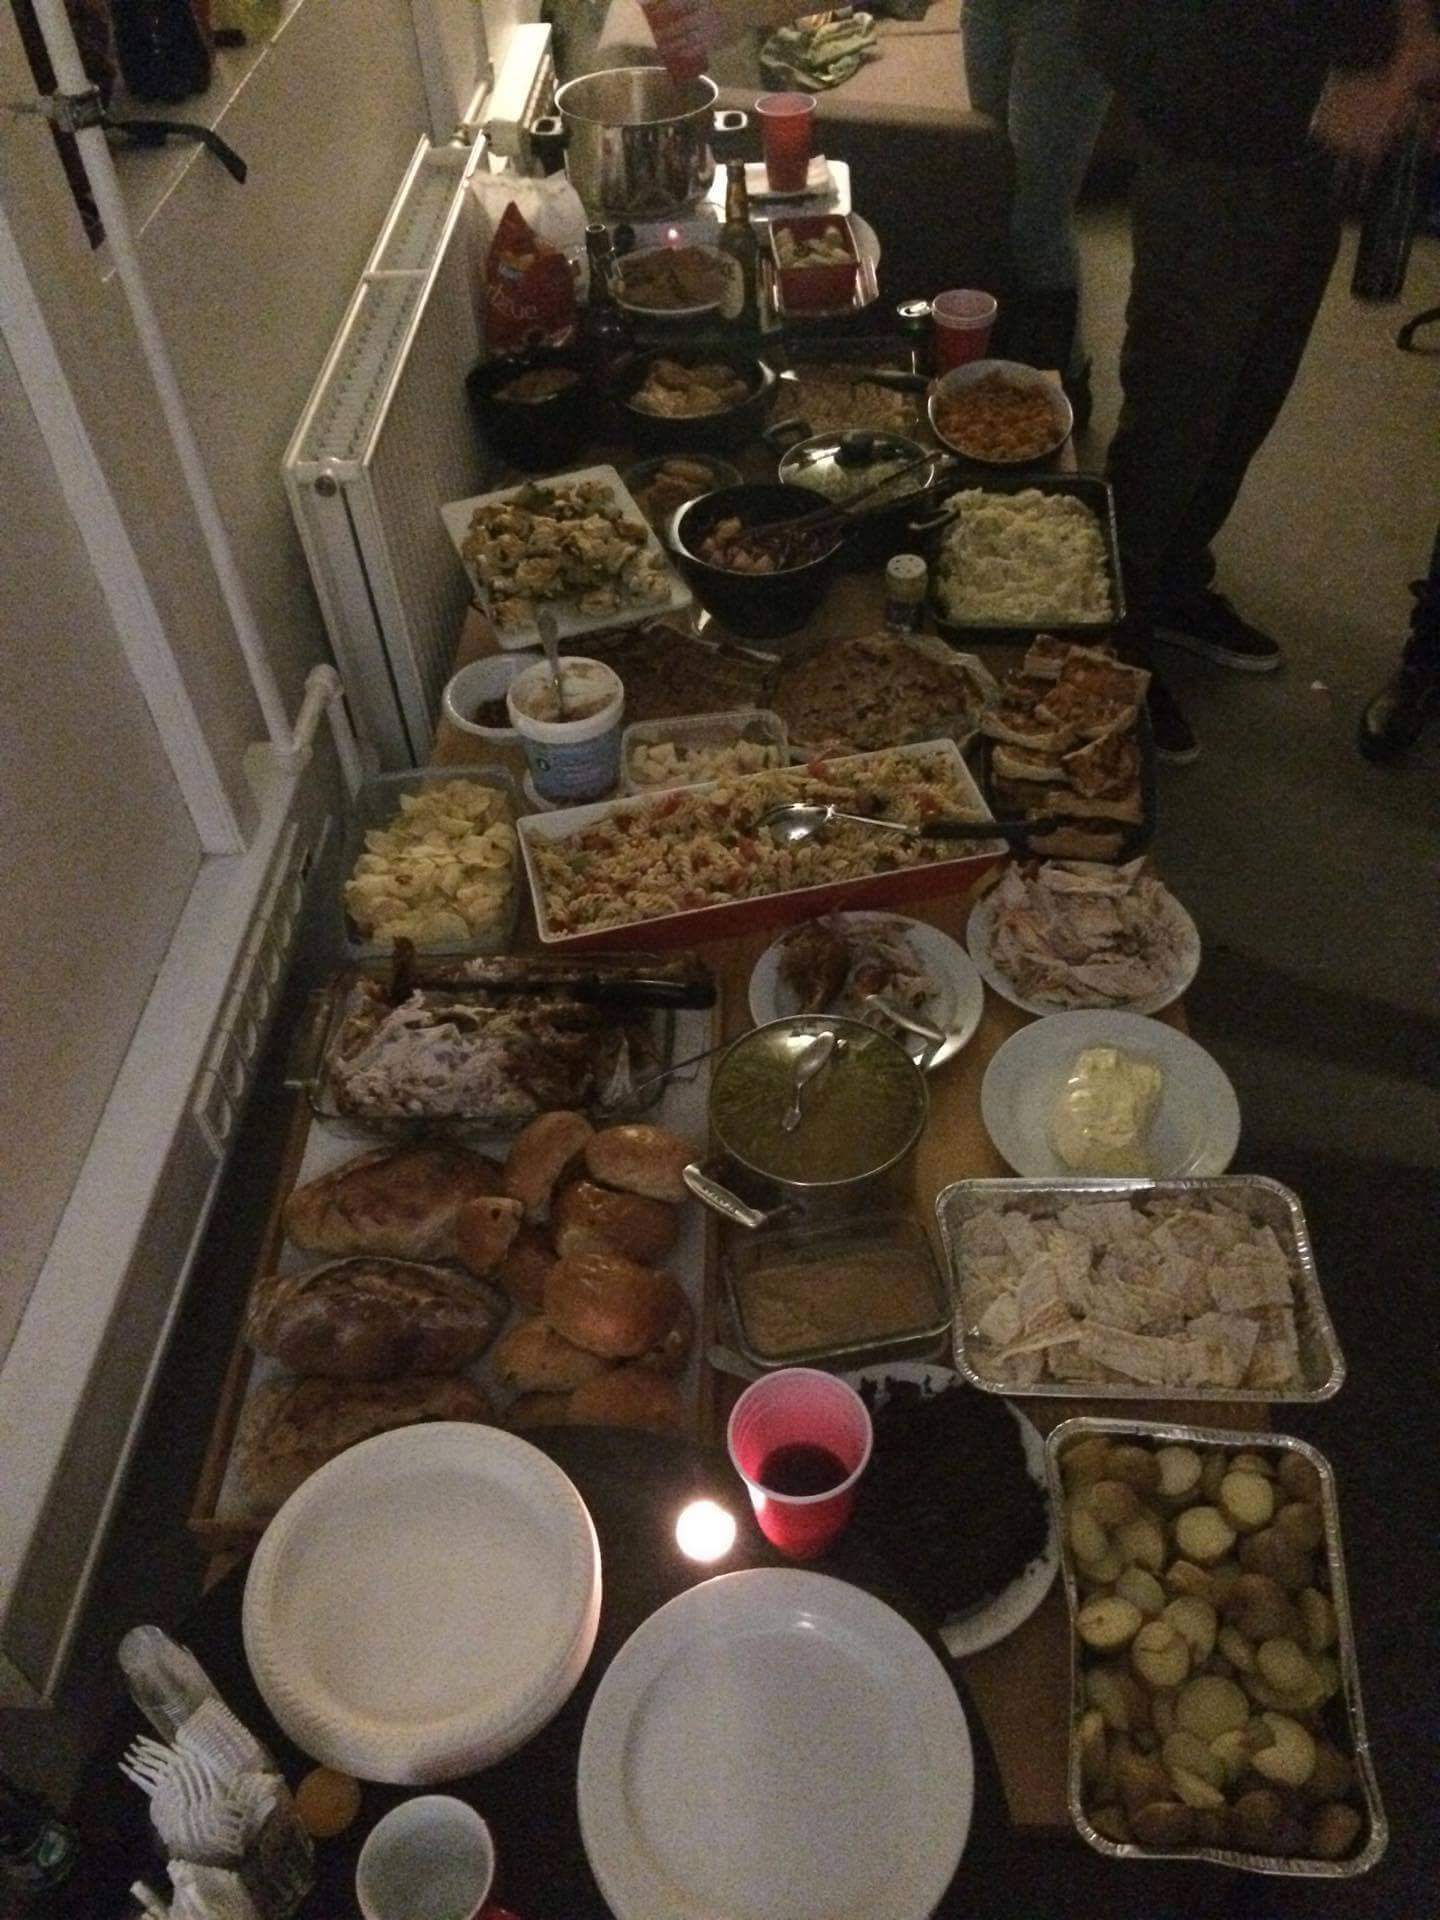 The spread.